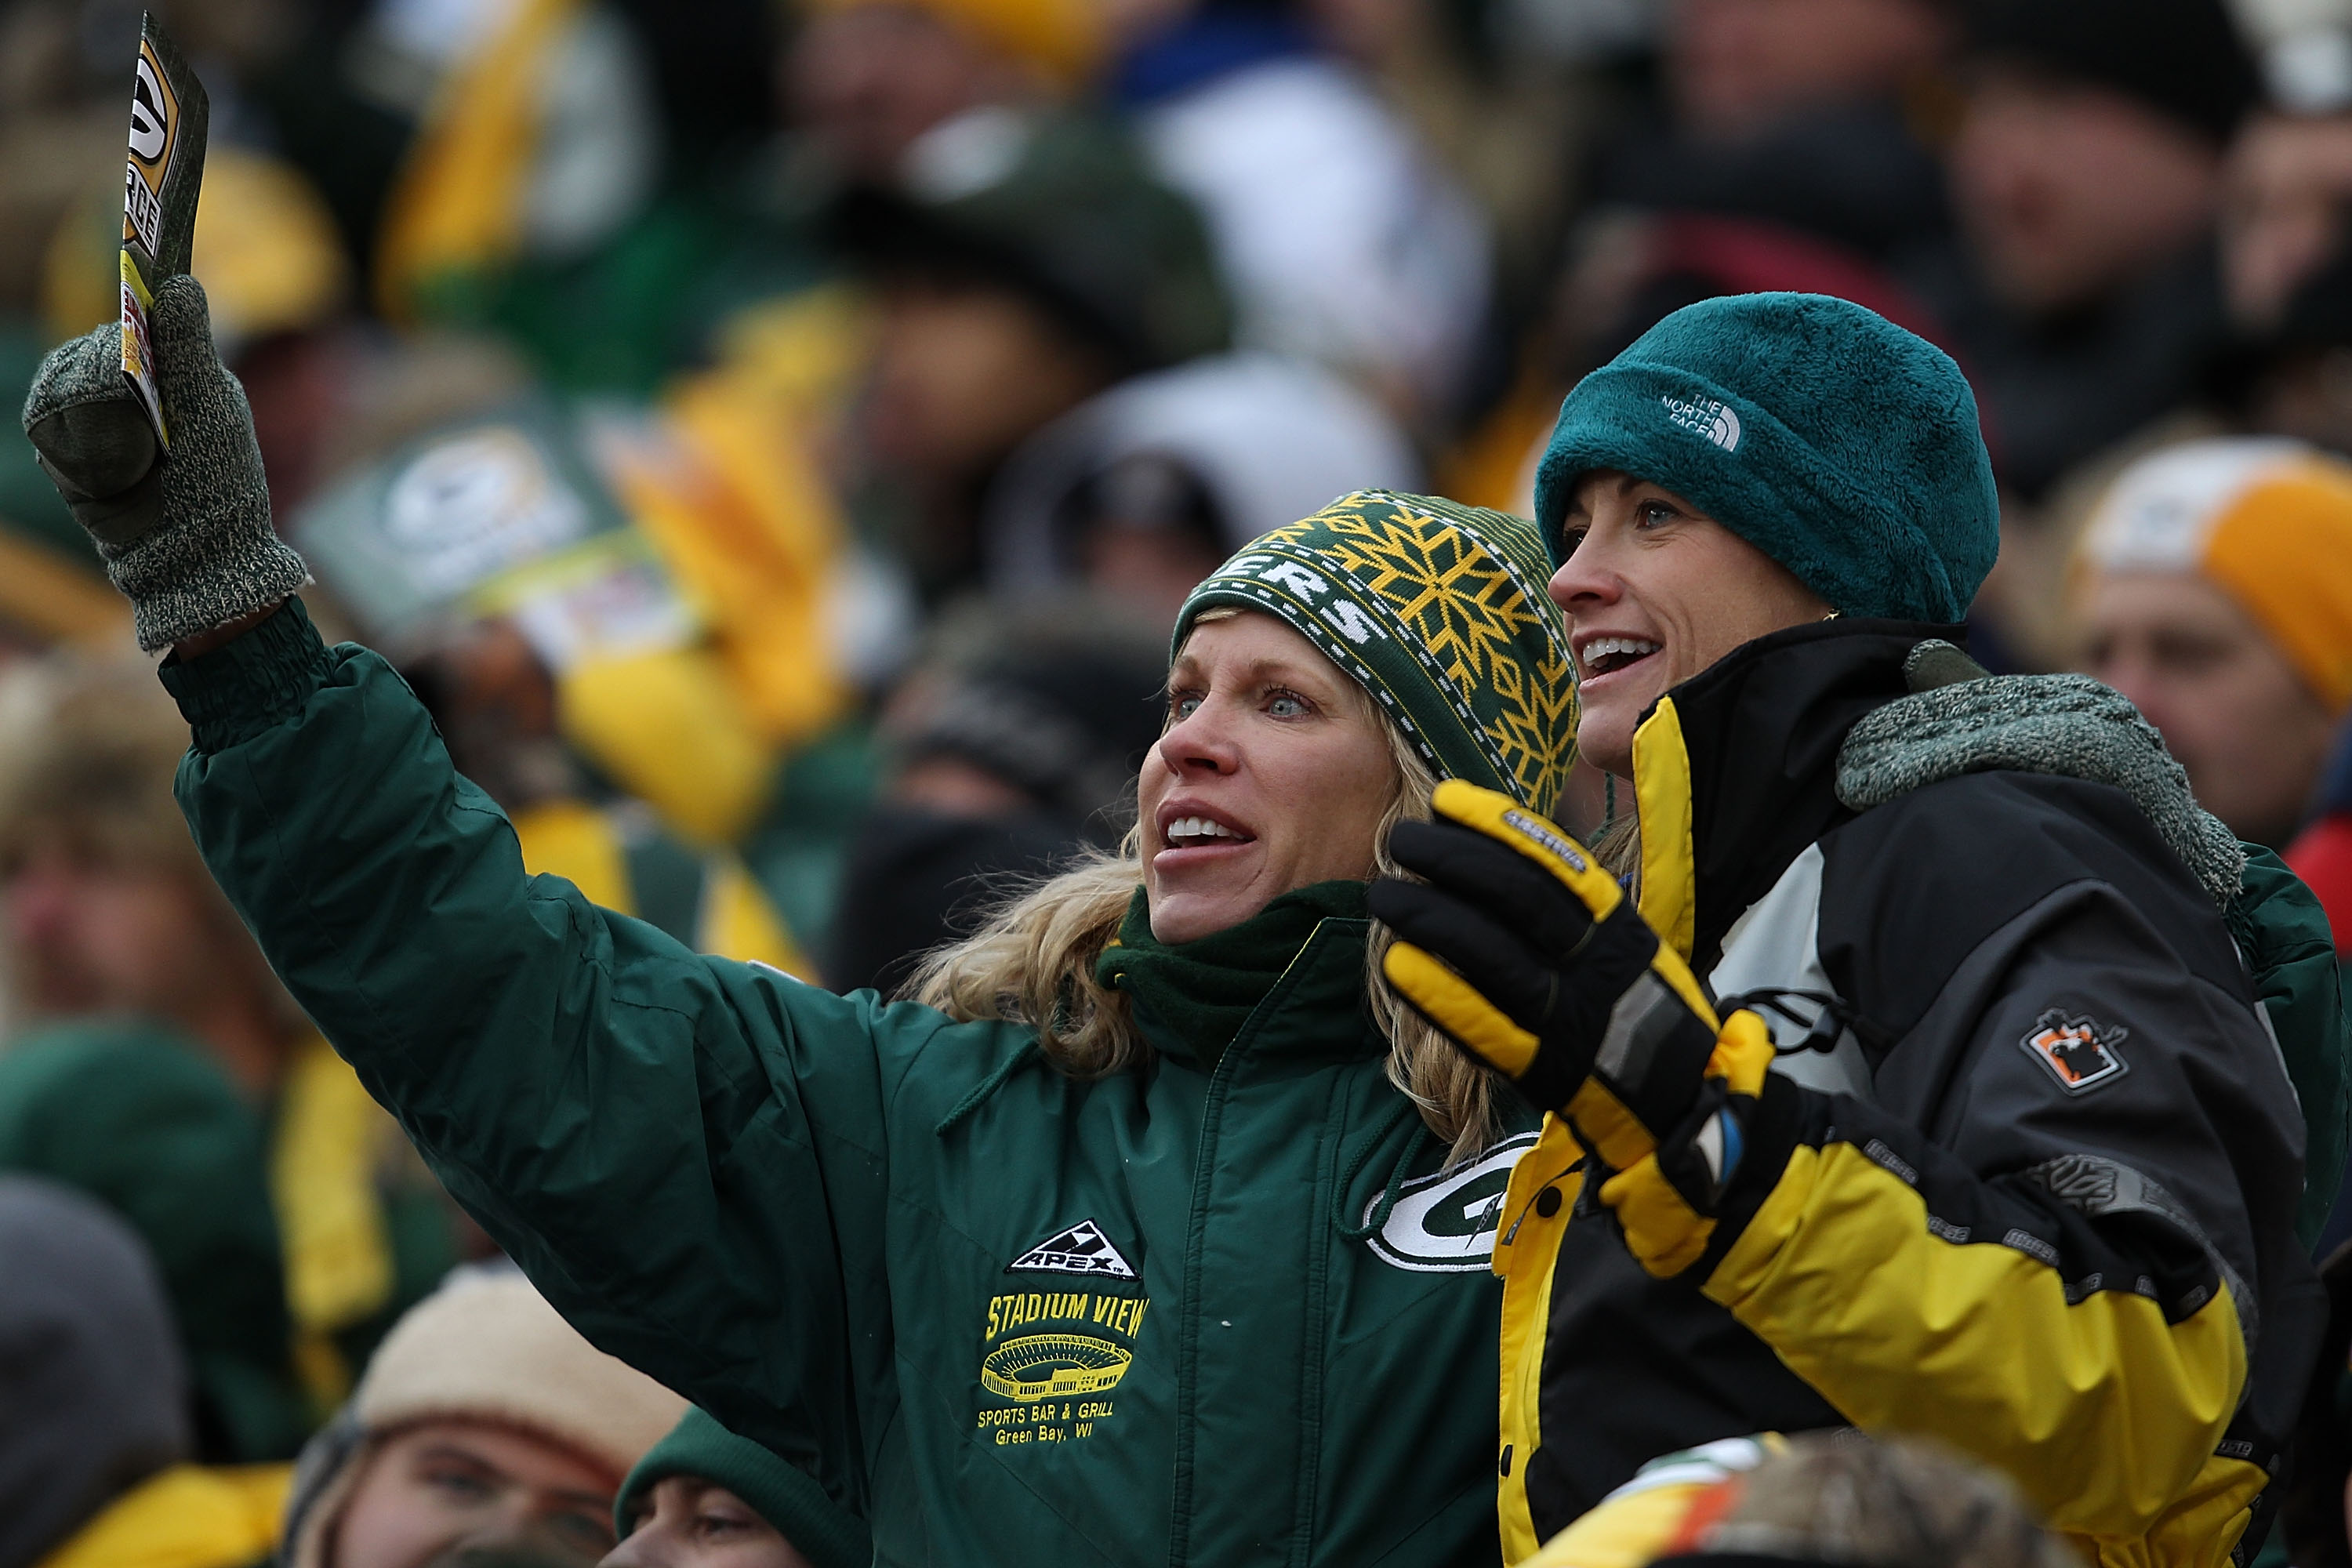 GREEN BAY, WI - DECEMBER 05: Fans of the Green Bay Packers cheer during a game against the San Francisco 49ers at Lambeau Field on December 5, 2010 in Green Bay, Wisconsin. The Packers defeated the 49ers 34-16. (Photo by Jonathan Daniel/Getty Images)